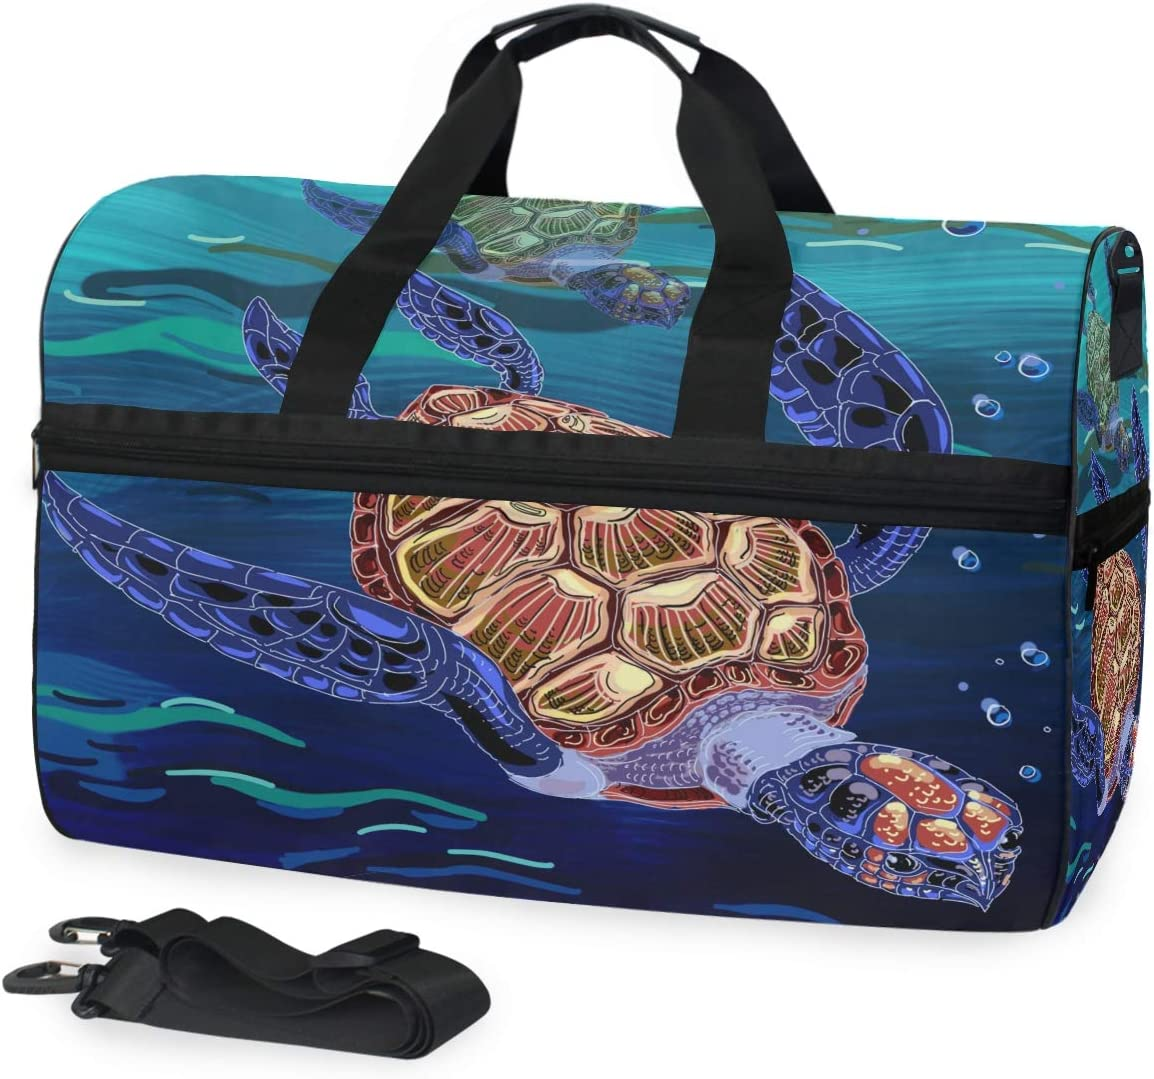 Ocean Animal Duffle Bag for Travel Gym Sports Lightweight Luggage Duffel Bags